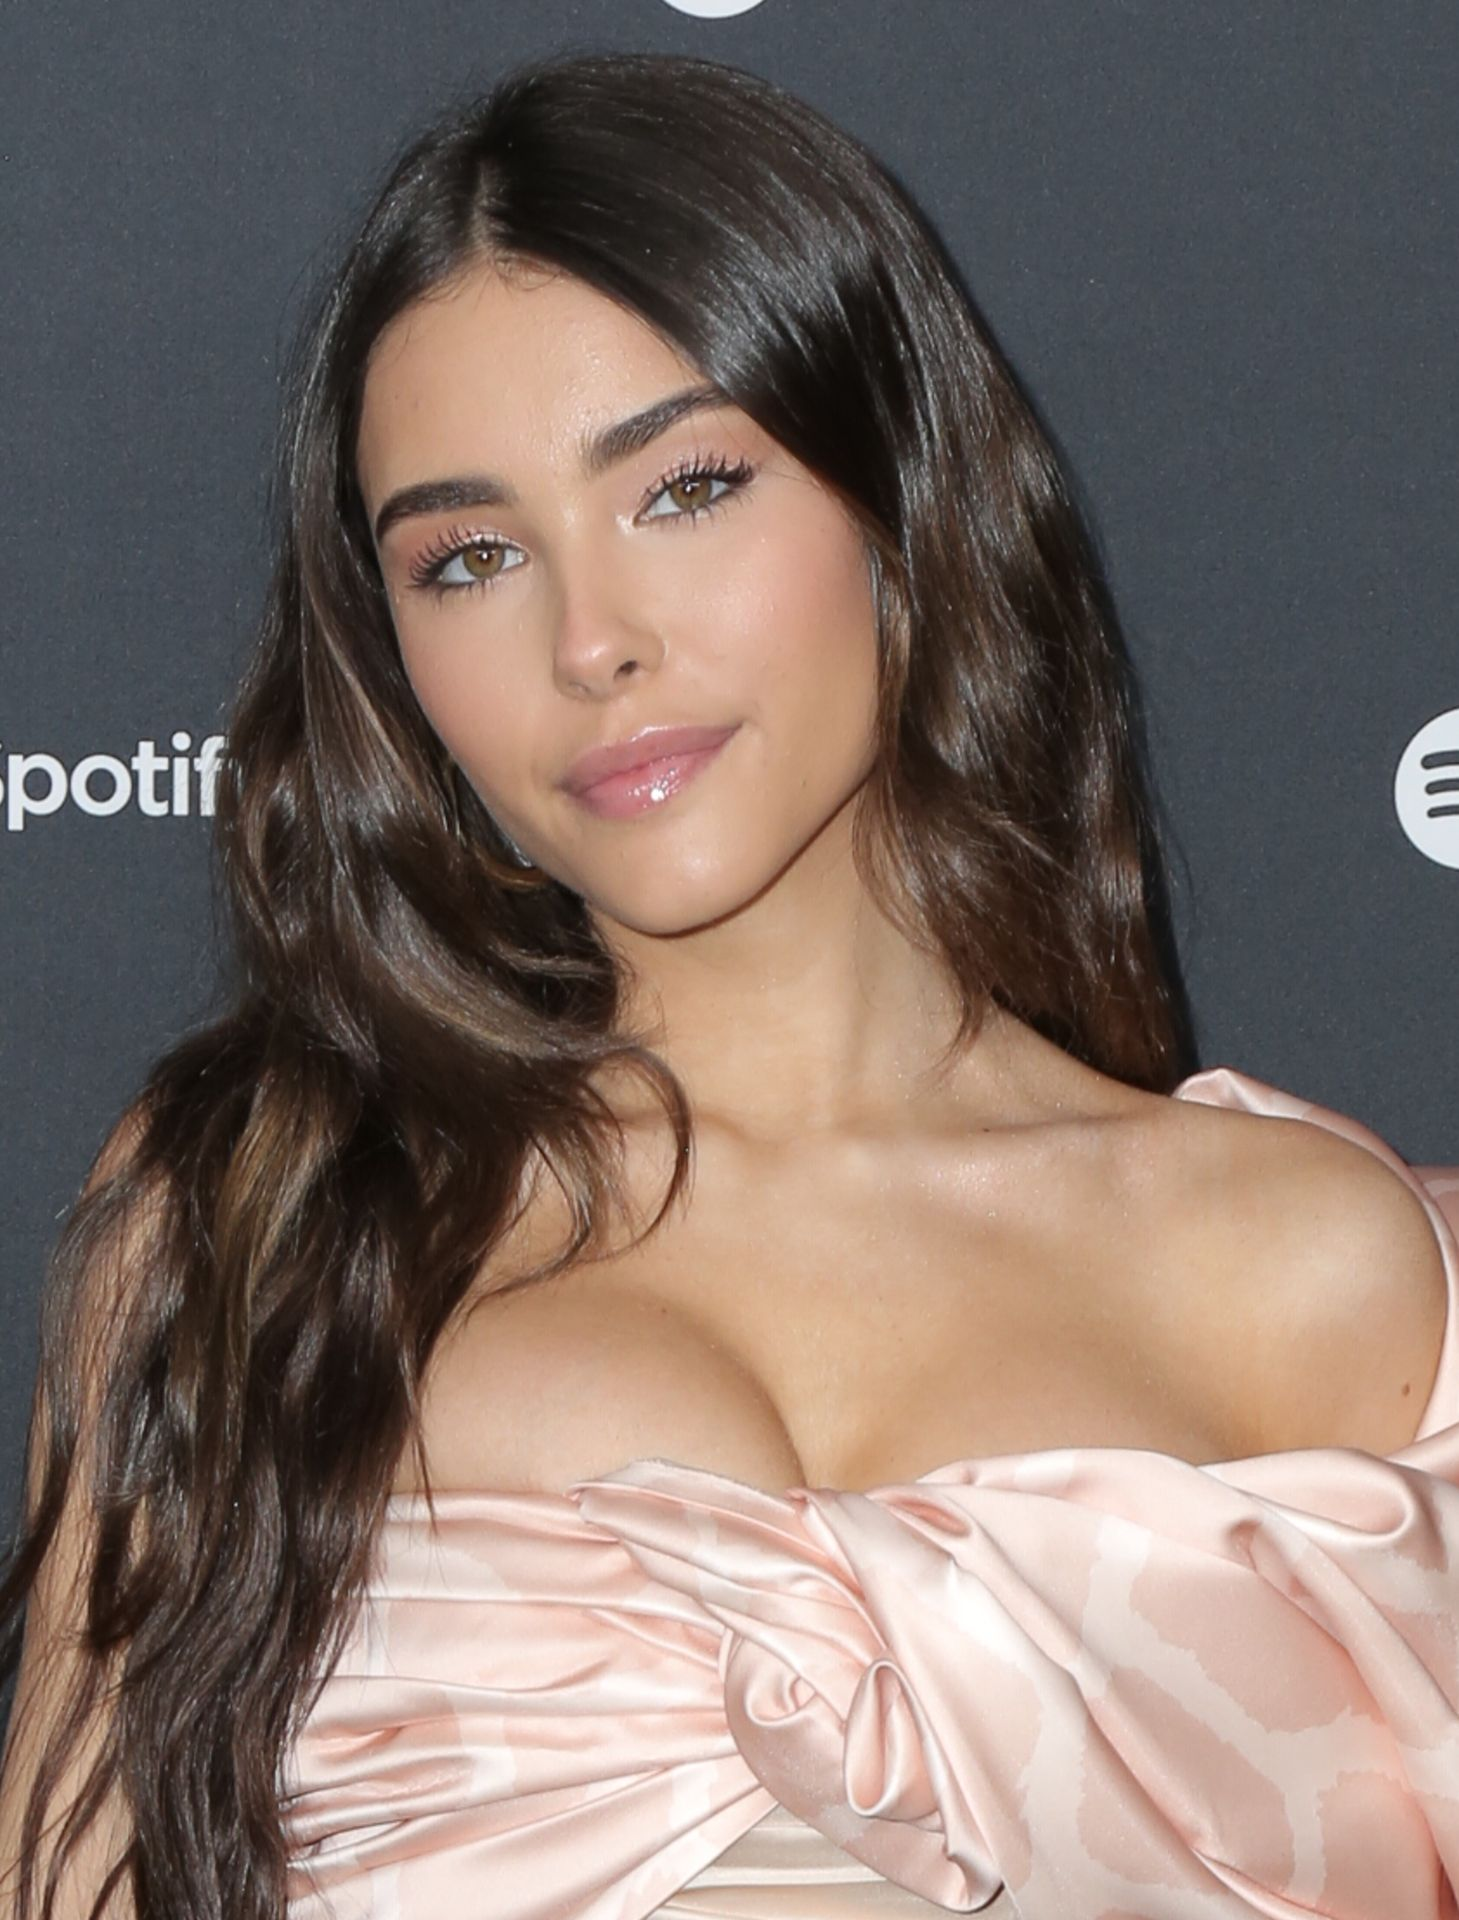 Madison Beer Displays Her Boobs At The Spotify Best New Artist Party 0008